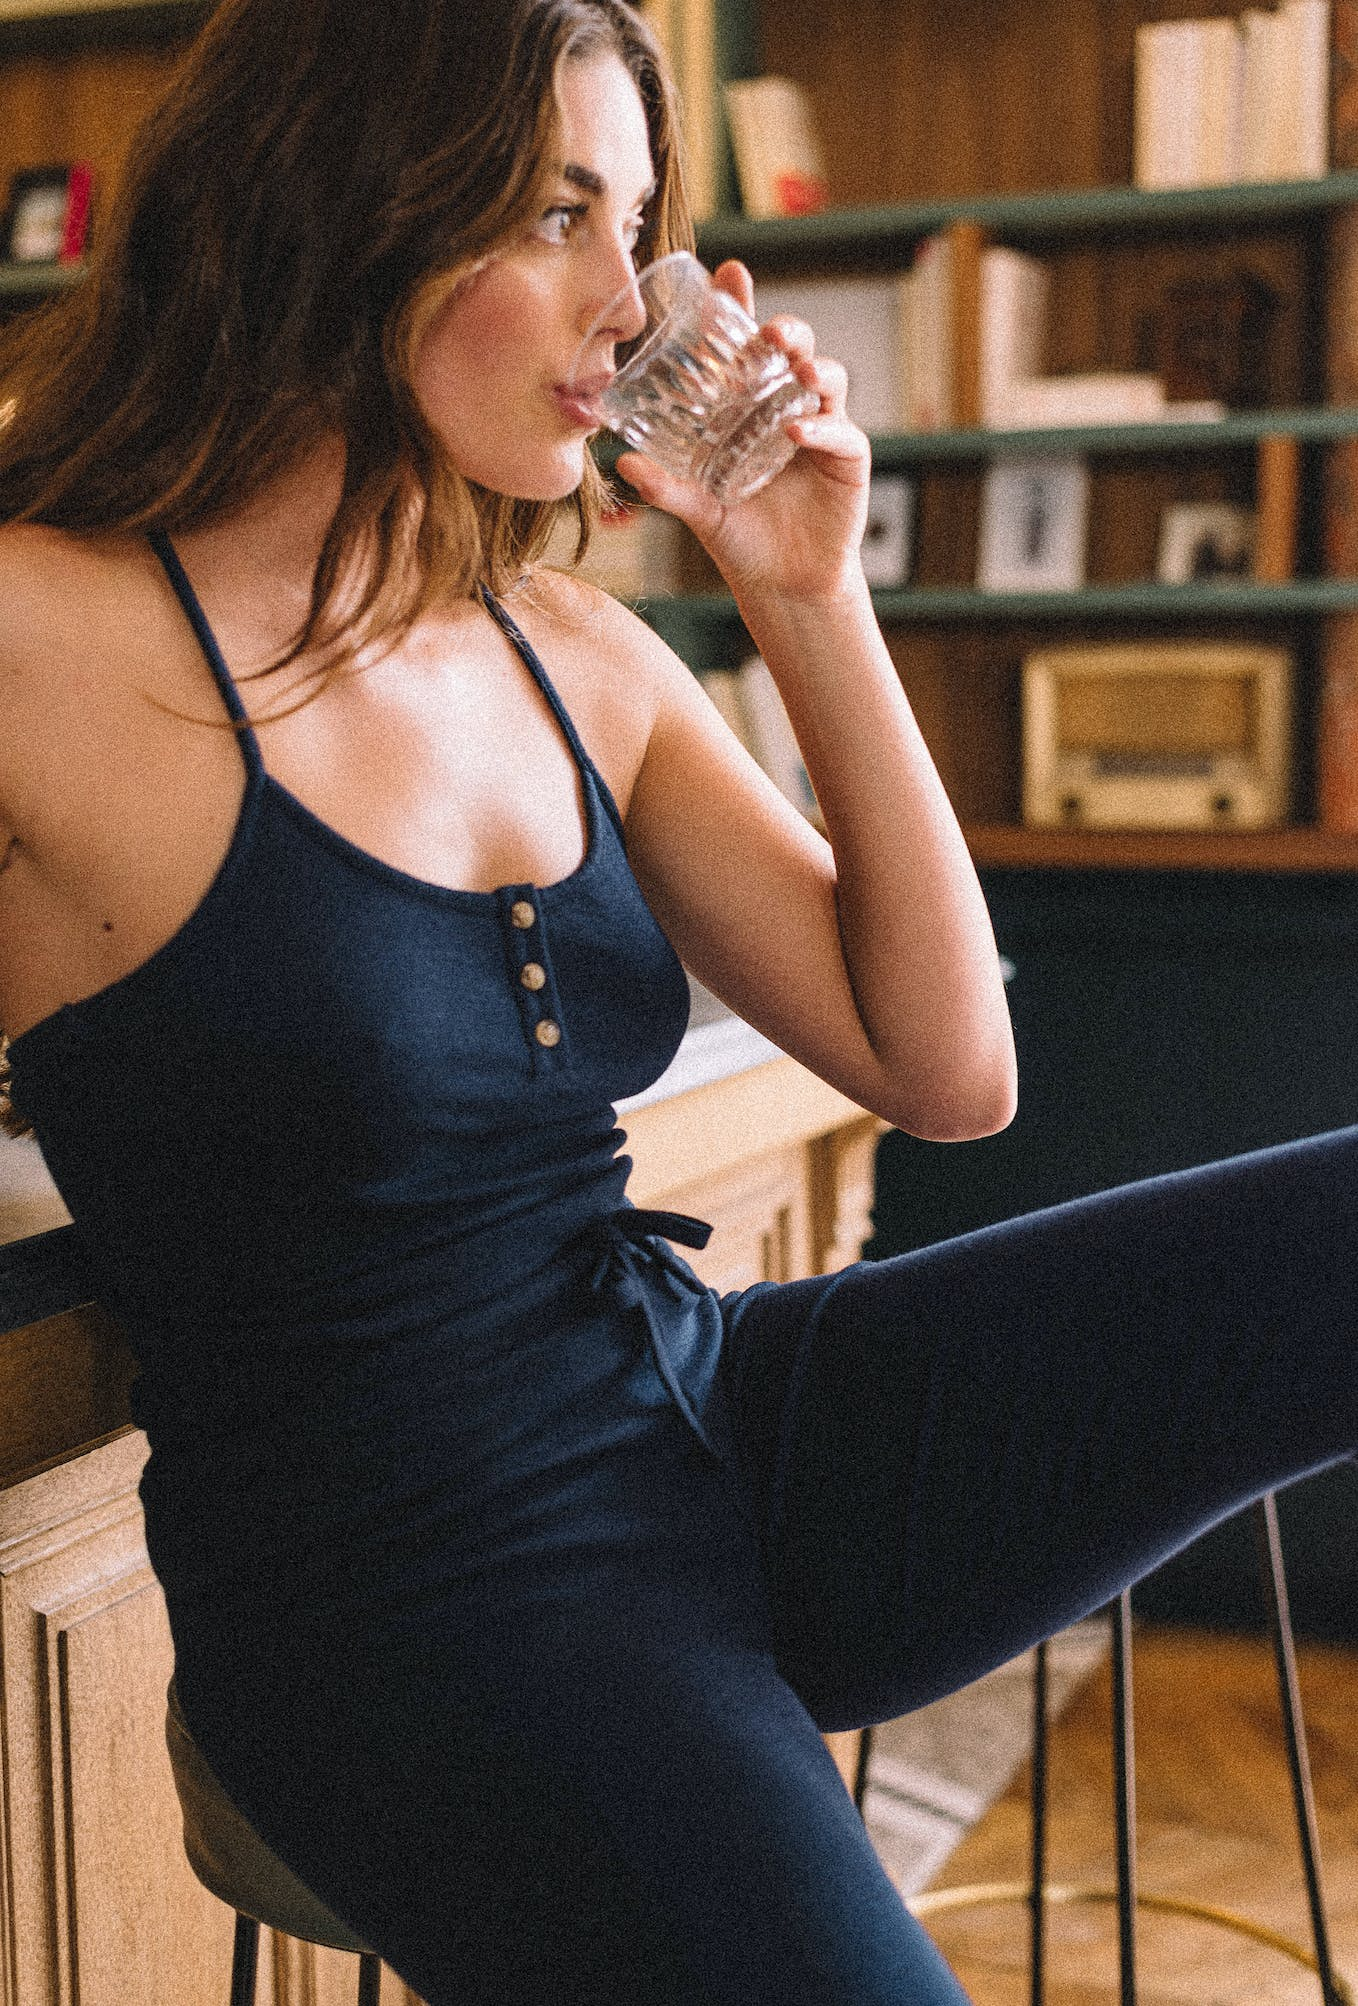 Train mistral tank top in navy blue